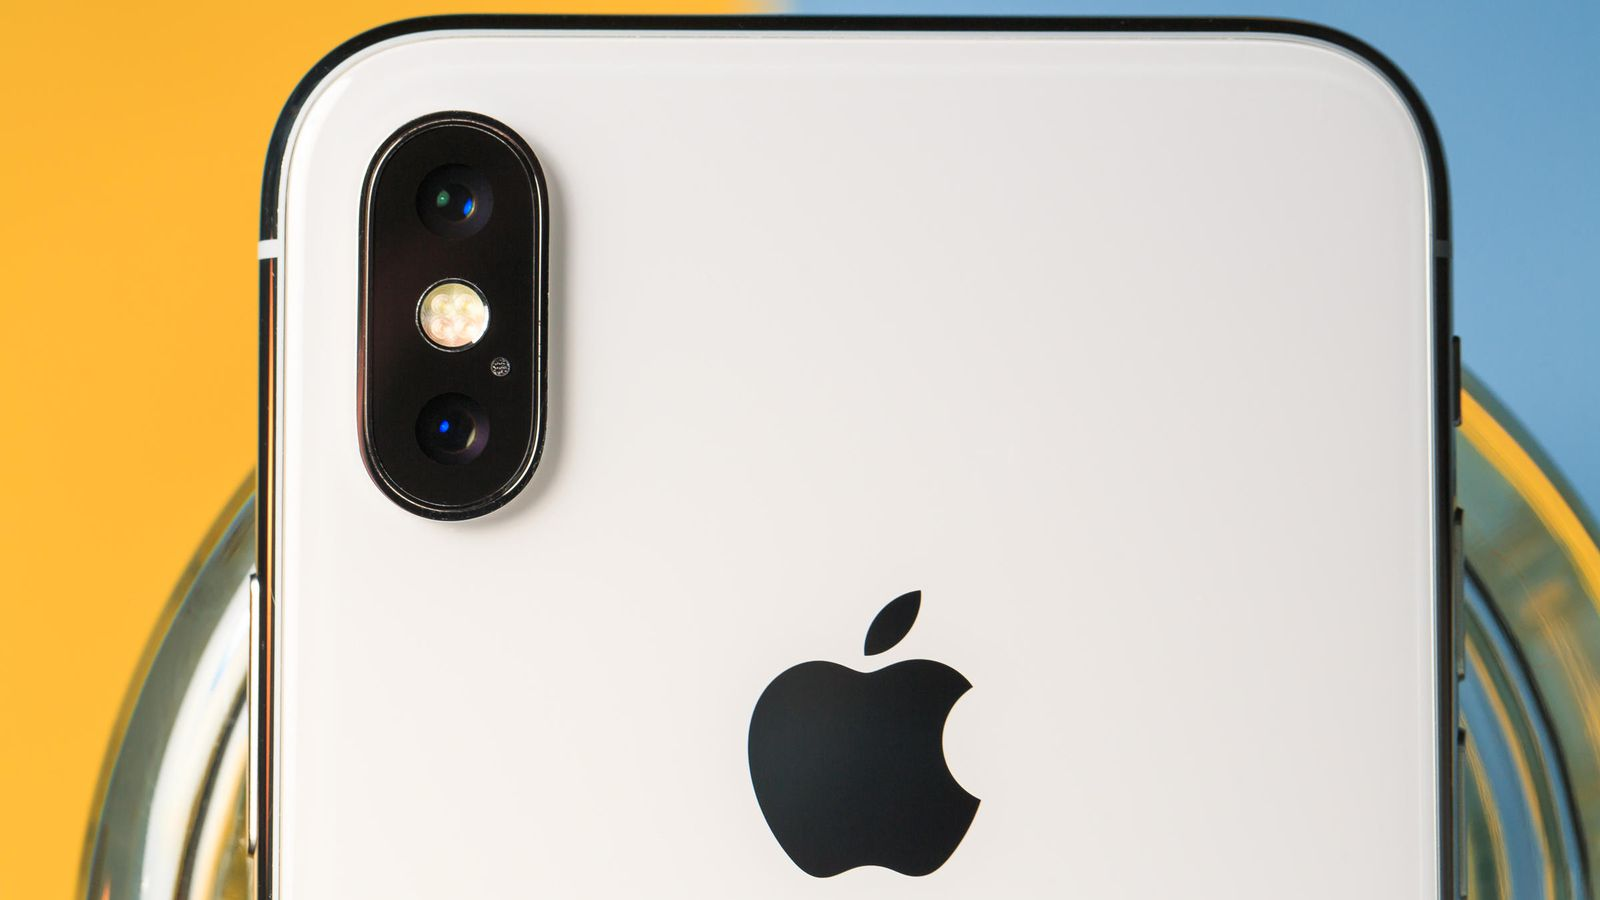 iPhone 11 is expected to sport updated camera optics